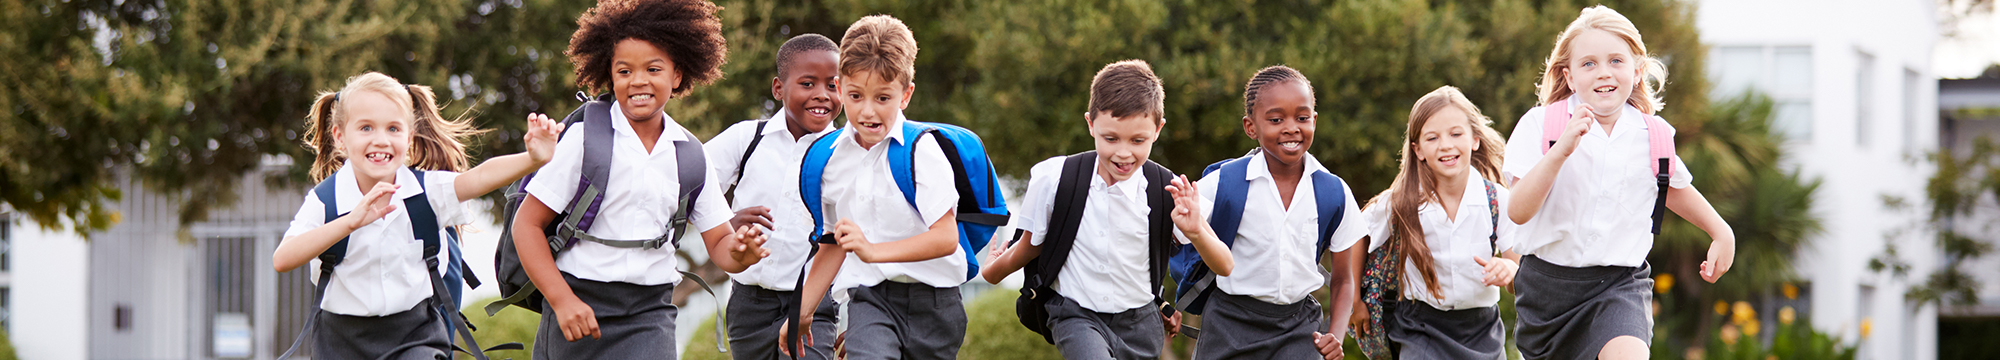 Students running together